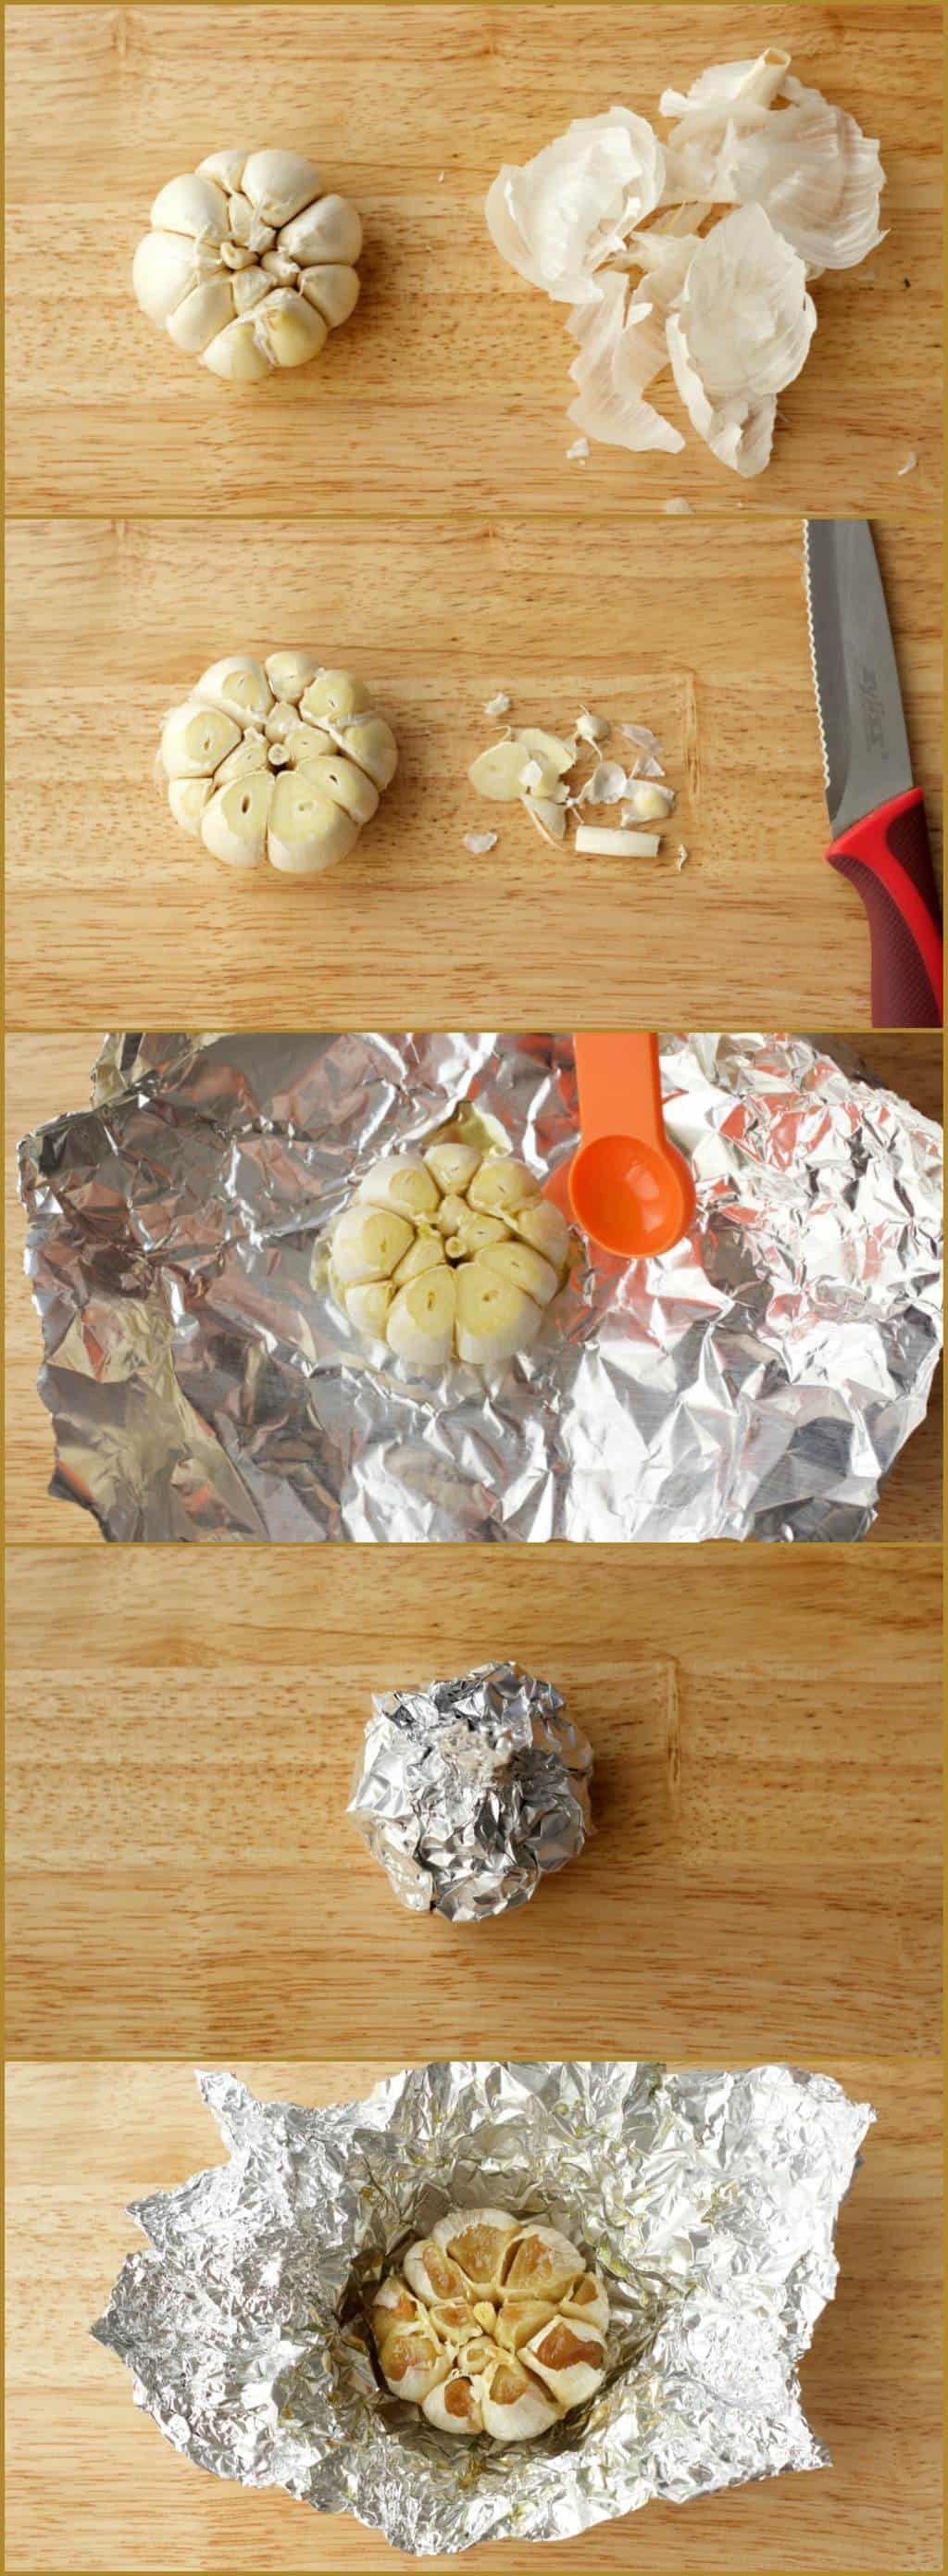 How To Make Roasted Garlic #lovingitvegan #roastedgarlic #howto